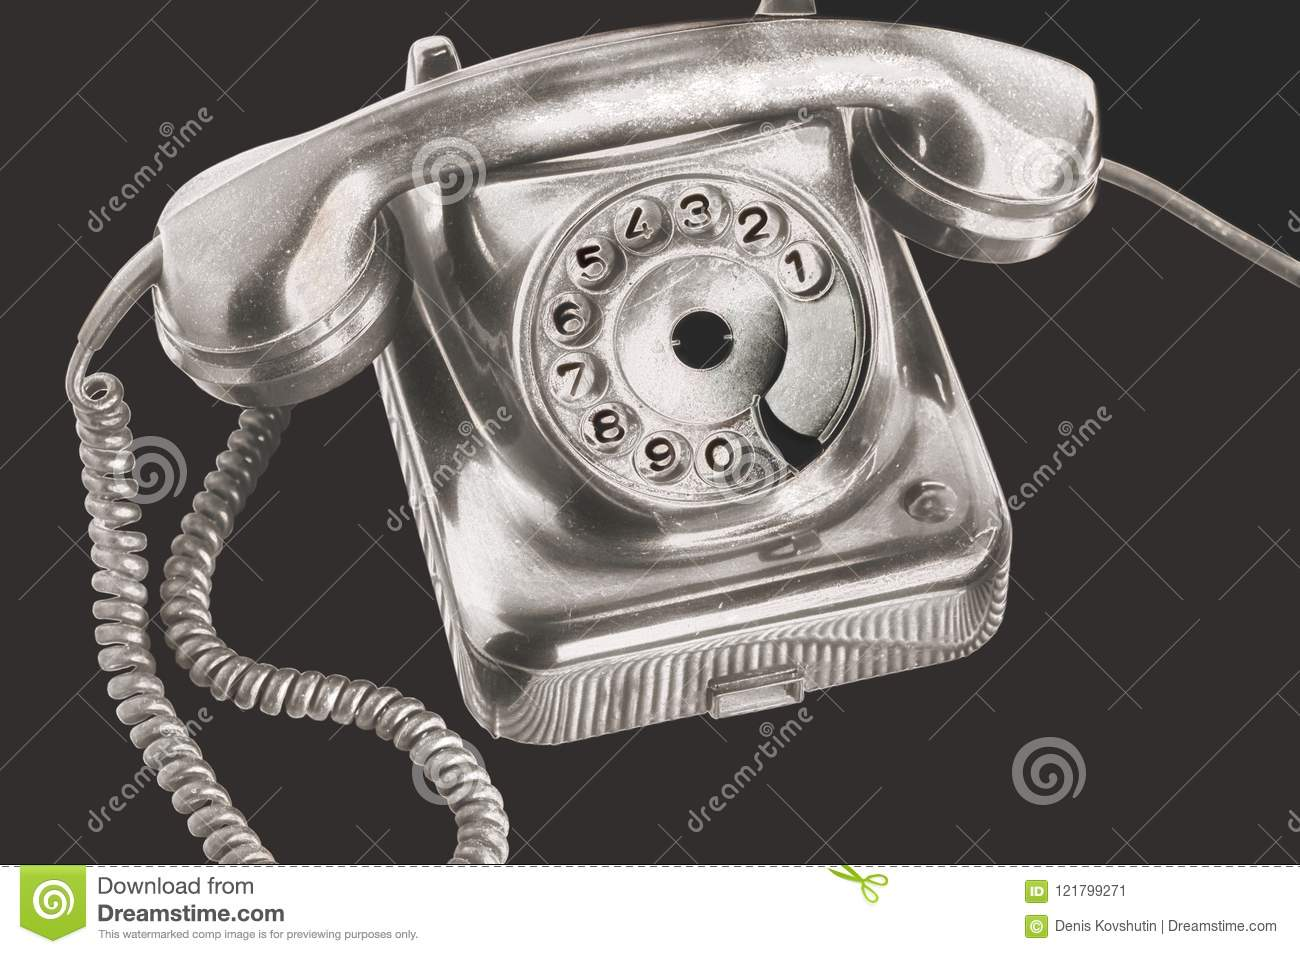 An ancient silver dial disk phone in futuristic processing on isolated black background